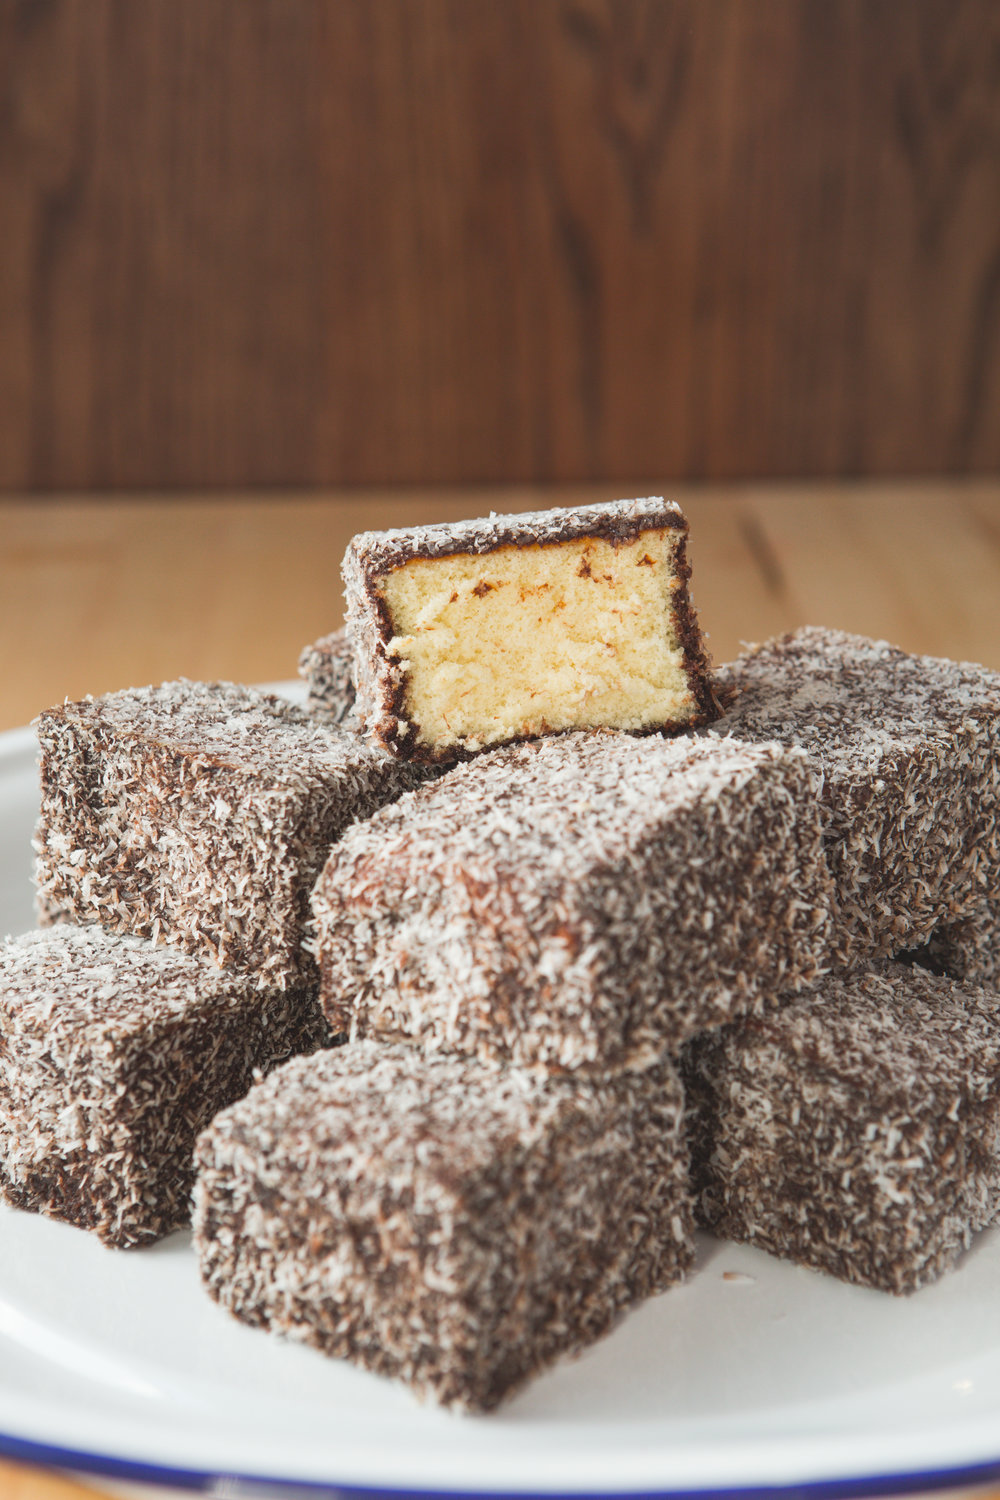 The Lamington.